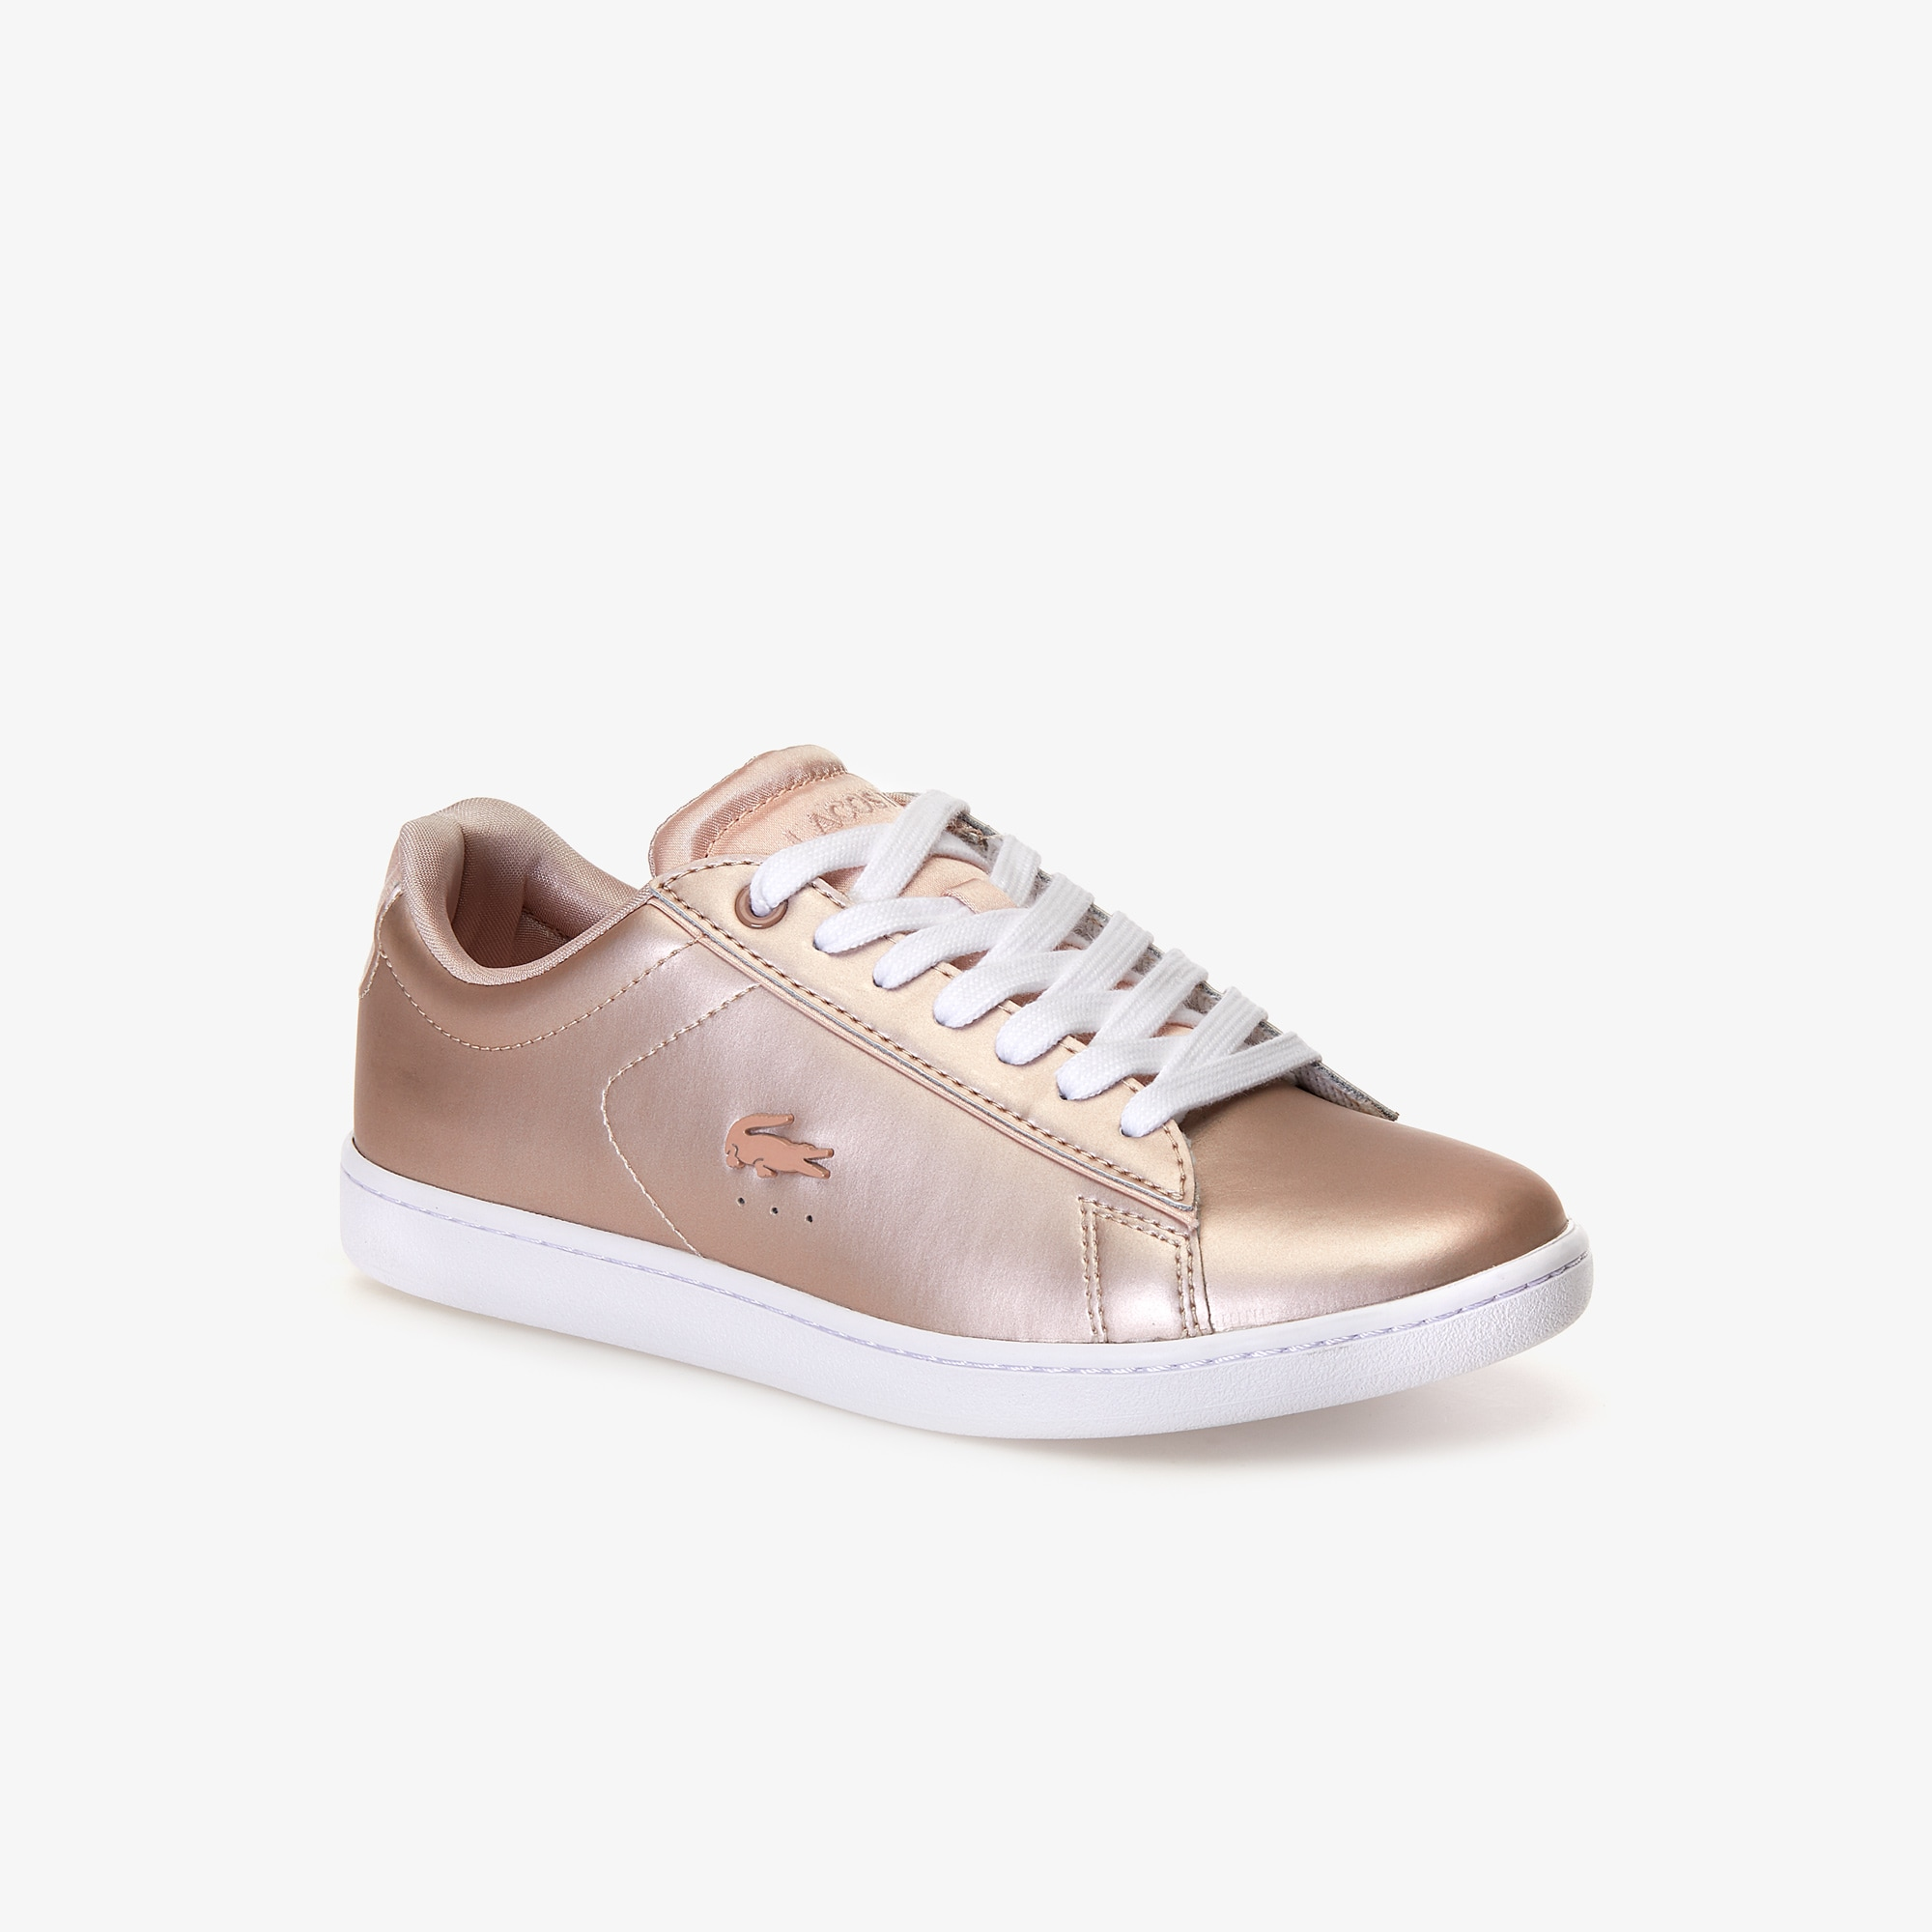 9e3c34021f35 Women s Carnaby Evo Metallic Trainers